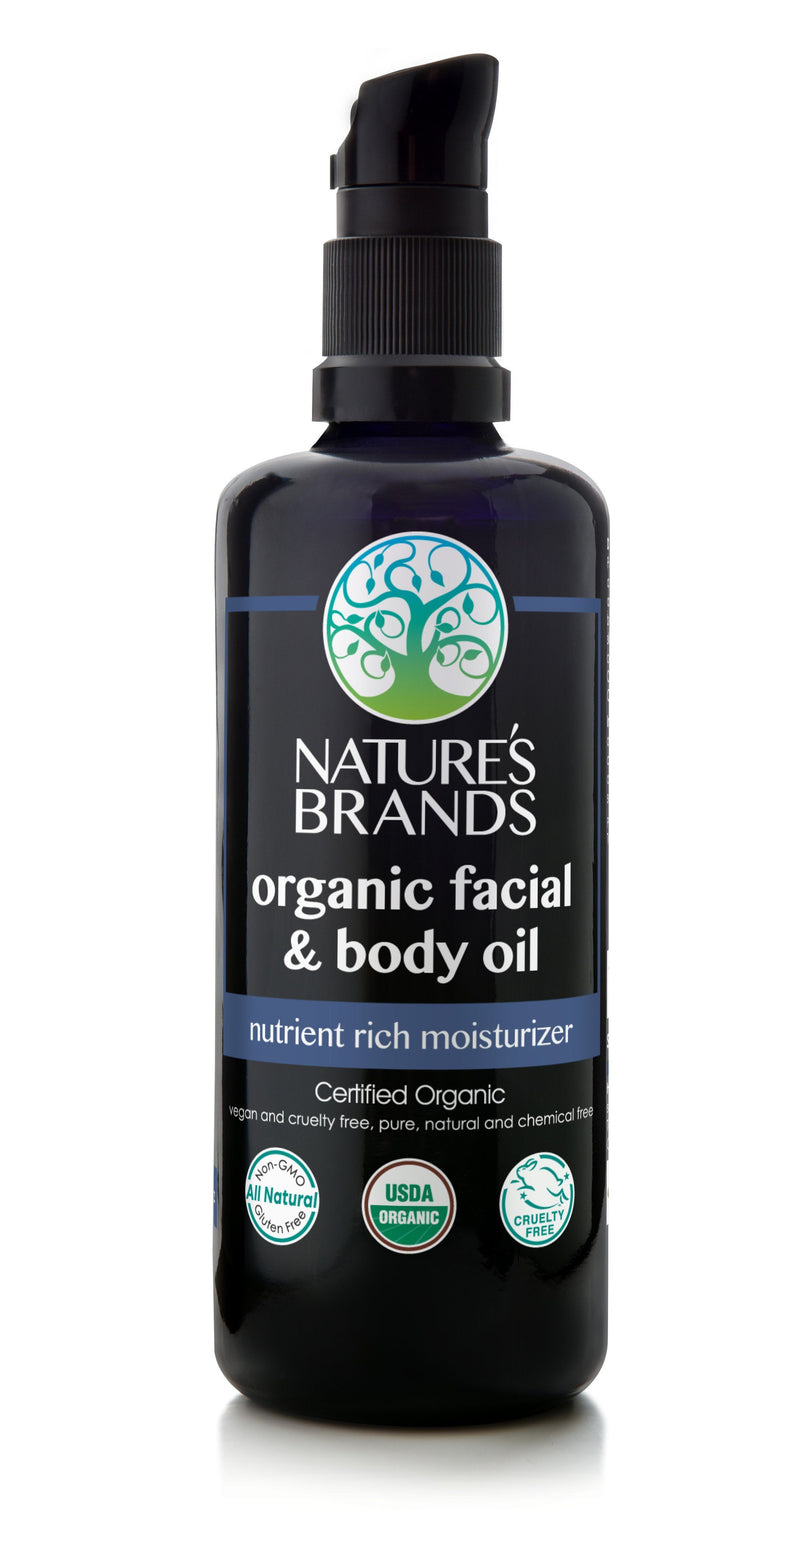 Herbal Choice Mari Organic Facial And Body Oil - Herbal Choice Mari Organic Facial And Body Oil - 3.4floz